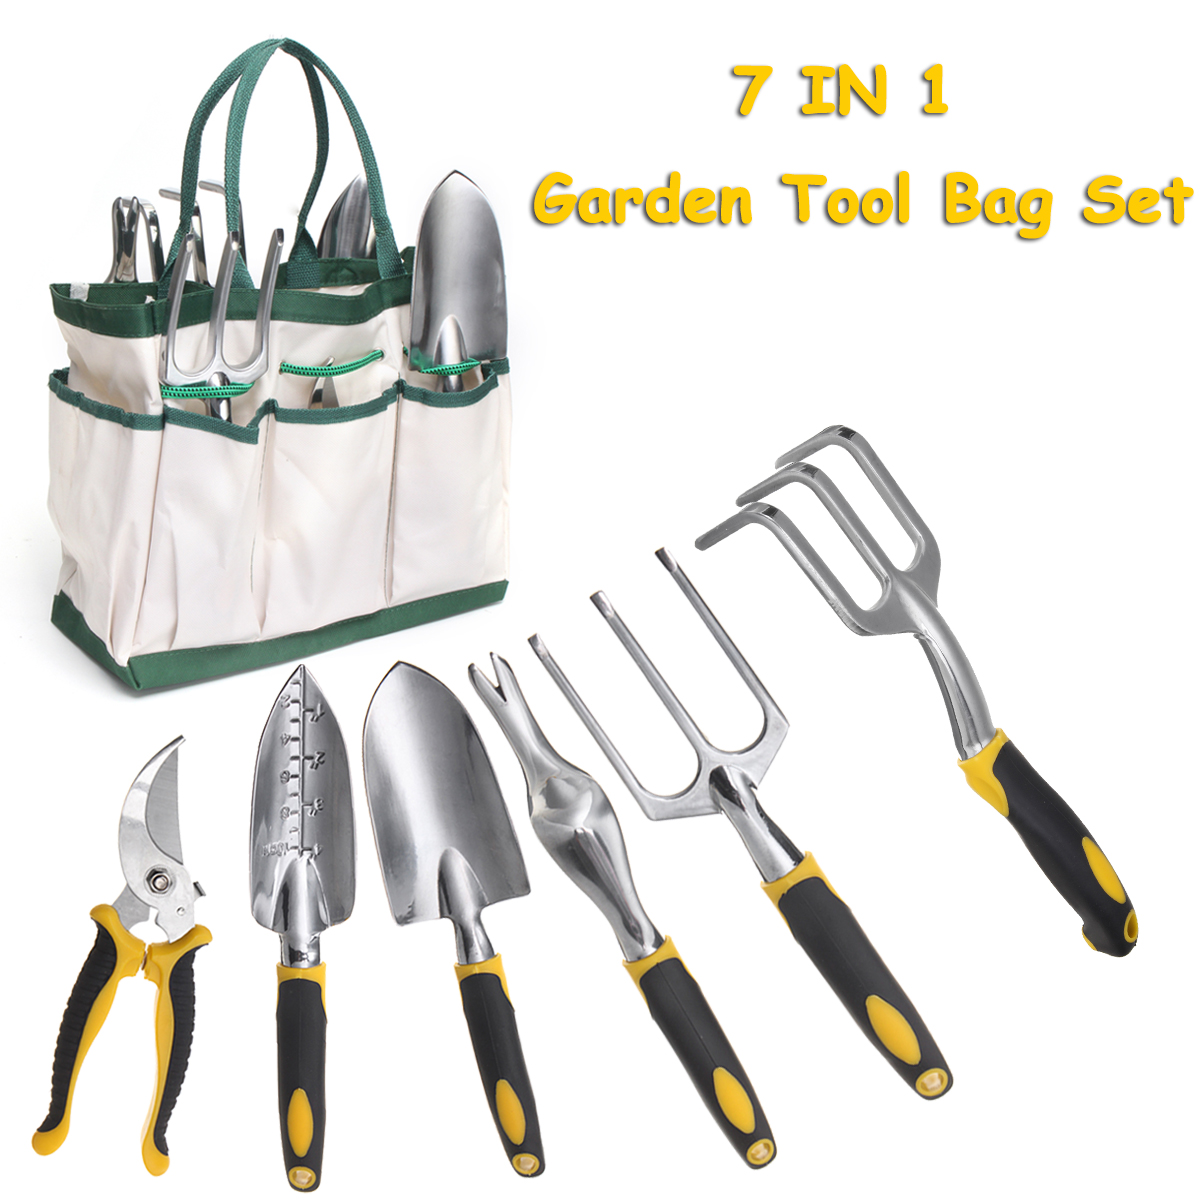 7Pcs Stainless Steel Tool Set Planting Tools Pliers with Folding Bag Garden Tool Set Weeding Fork Trowel Soil Scoop Cultivator 3pcs mini stainless steel garden tool set with soild wood handle